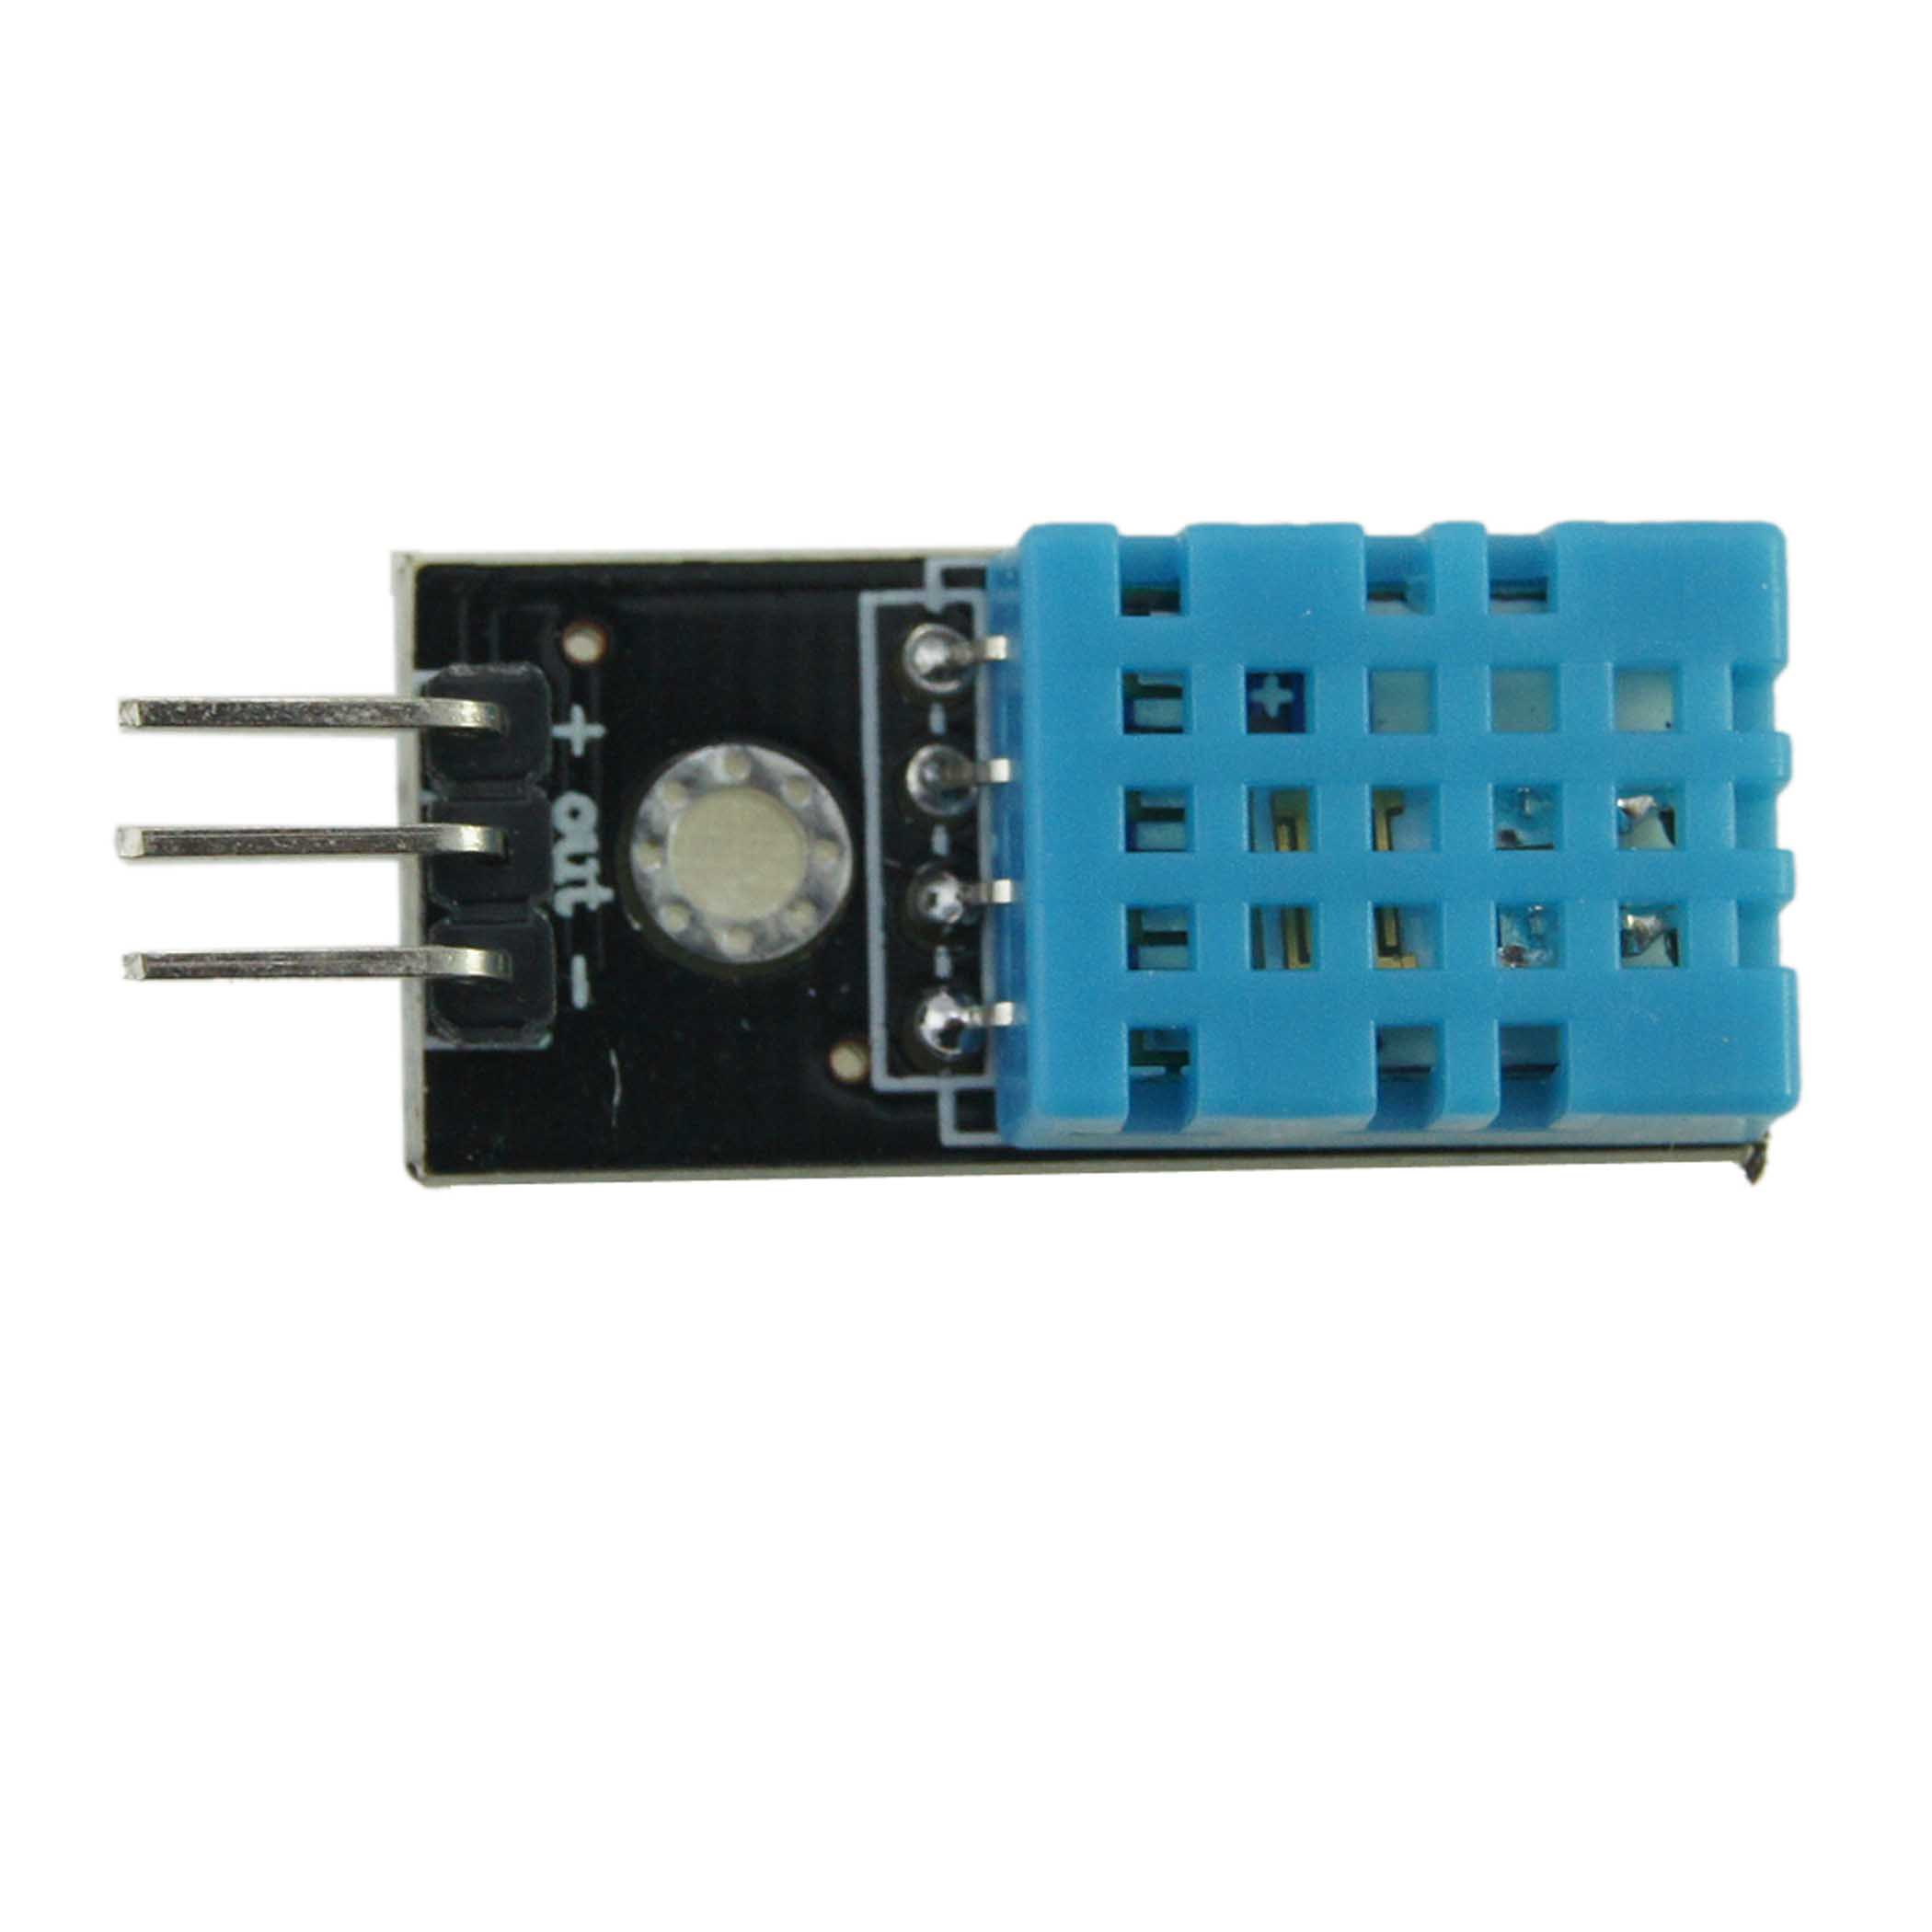 99020604 DHT11 Digital Temperature Humidity Sensor Module with wires #1A4B65